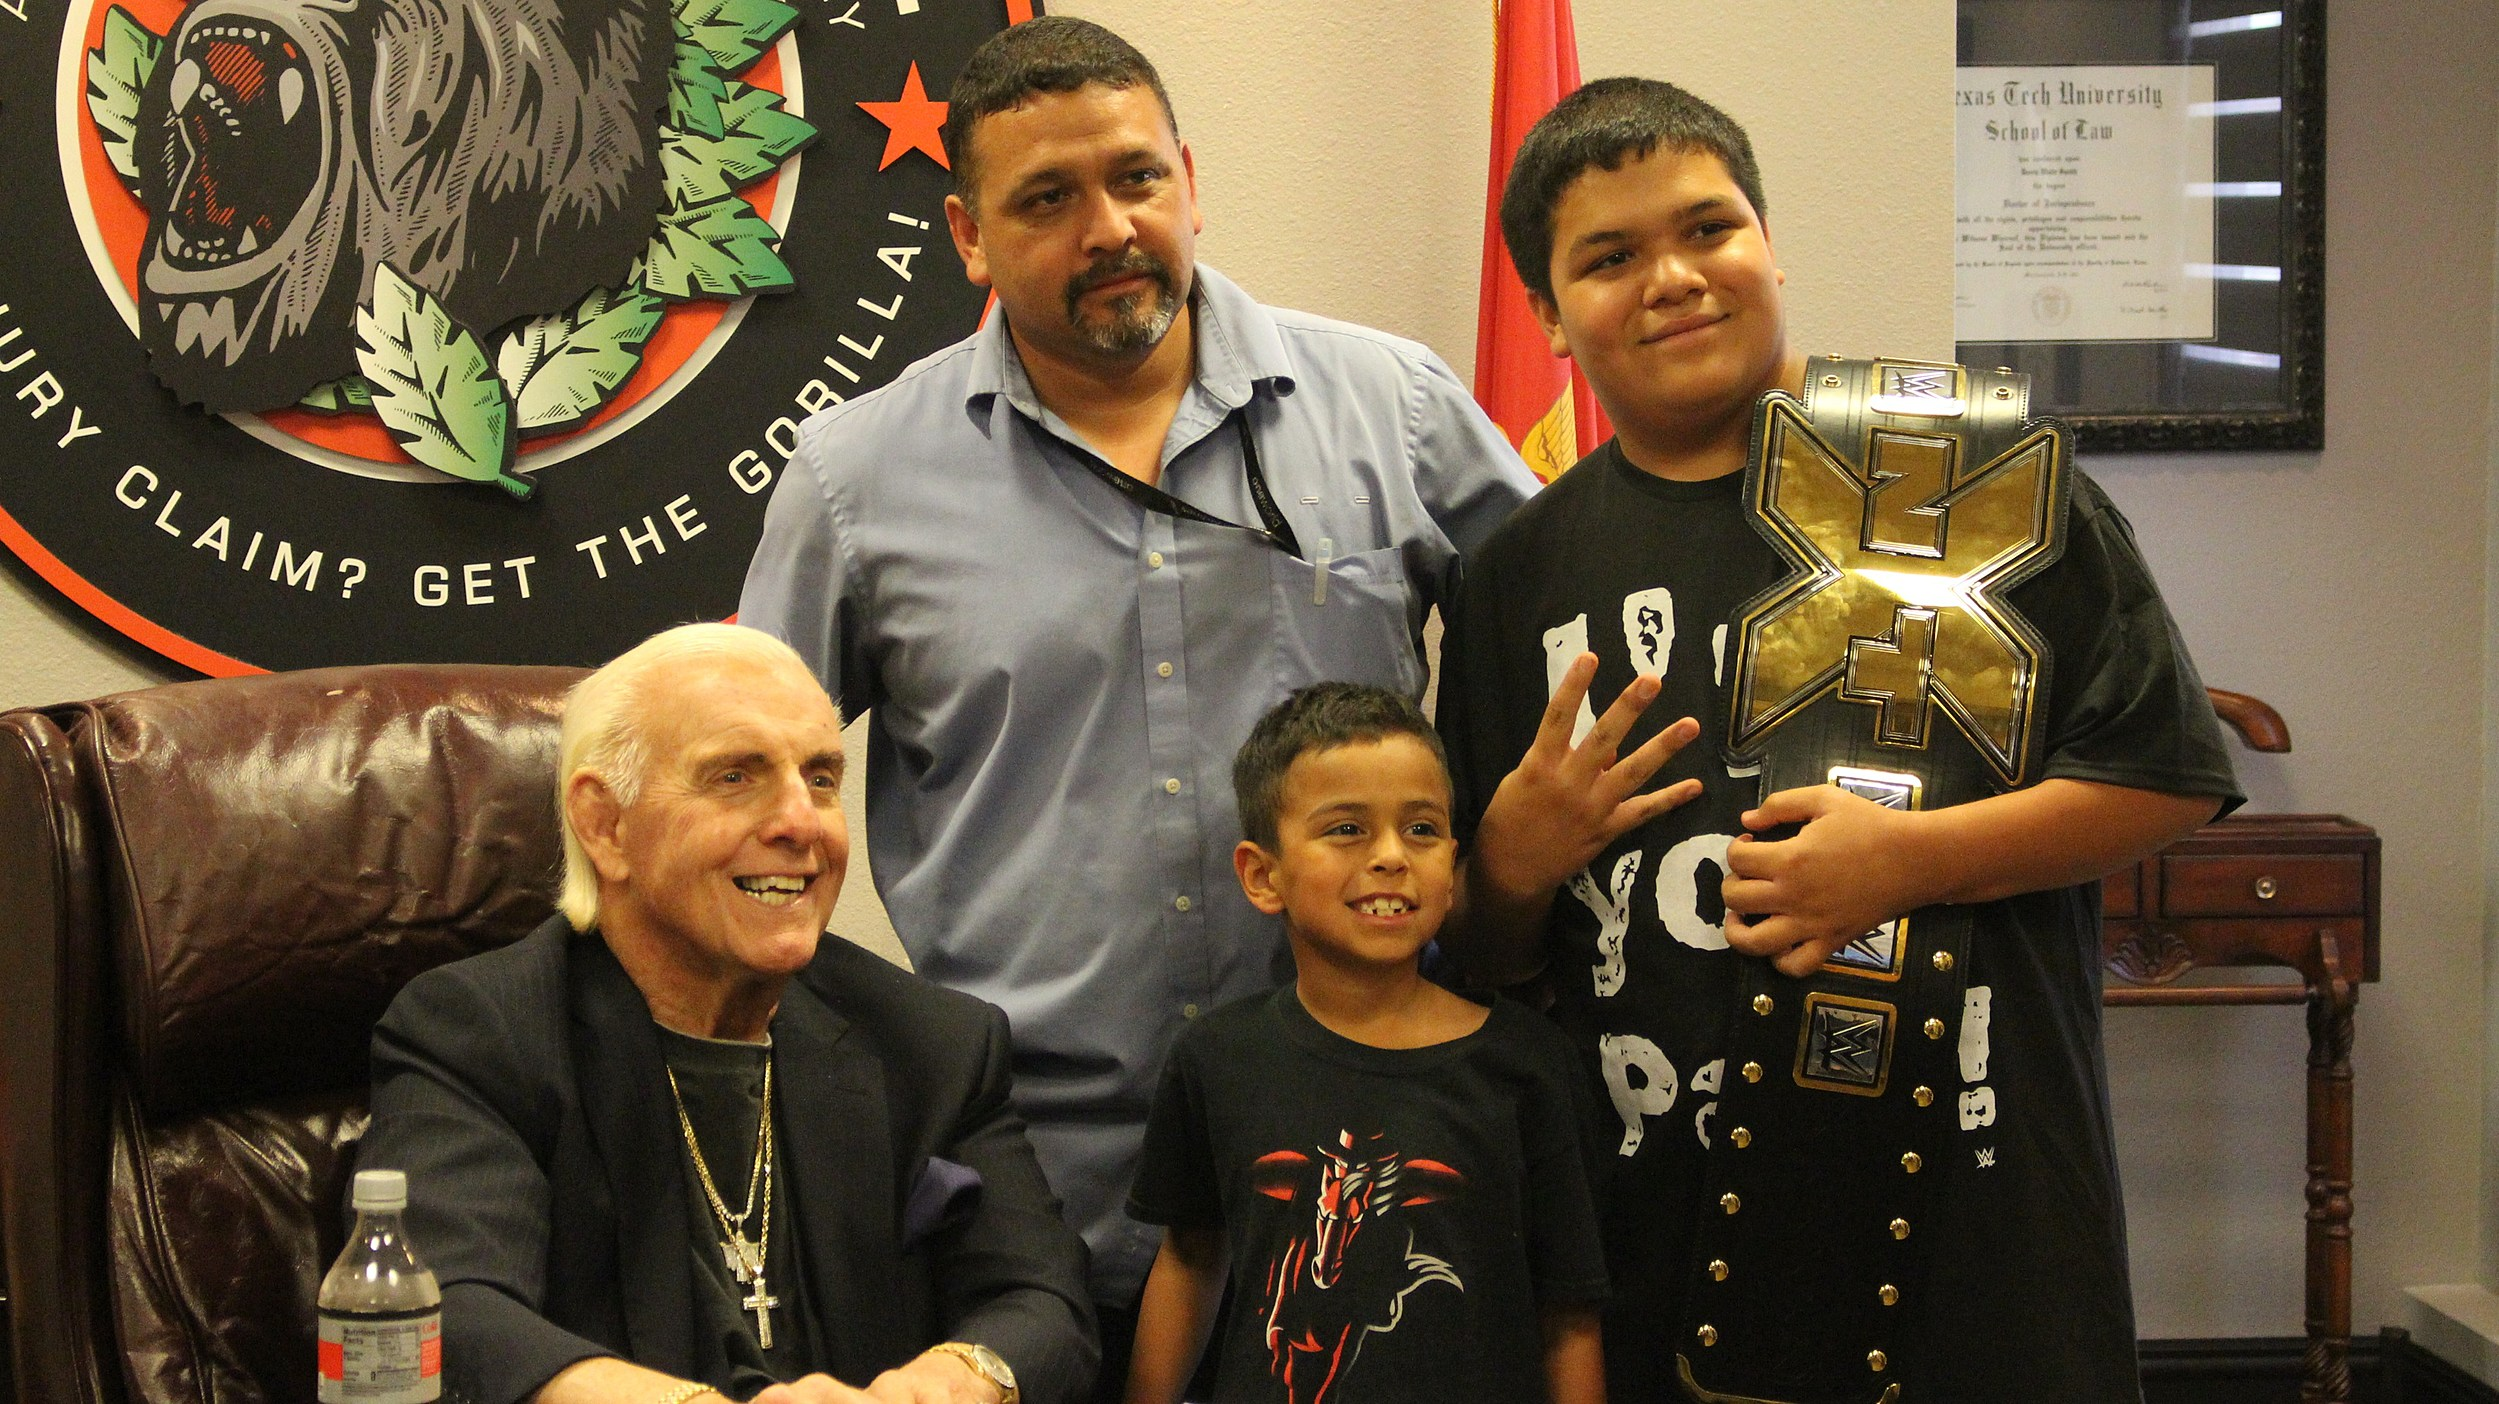 See Pictures From The Ric Flair Meet And Greet In Lubbock